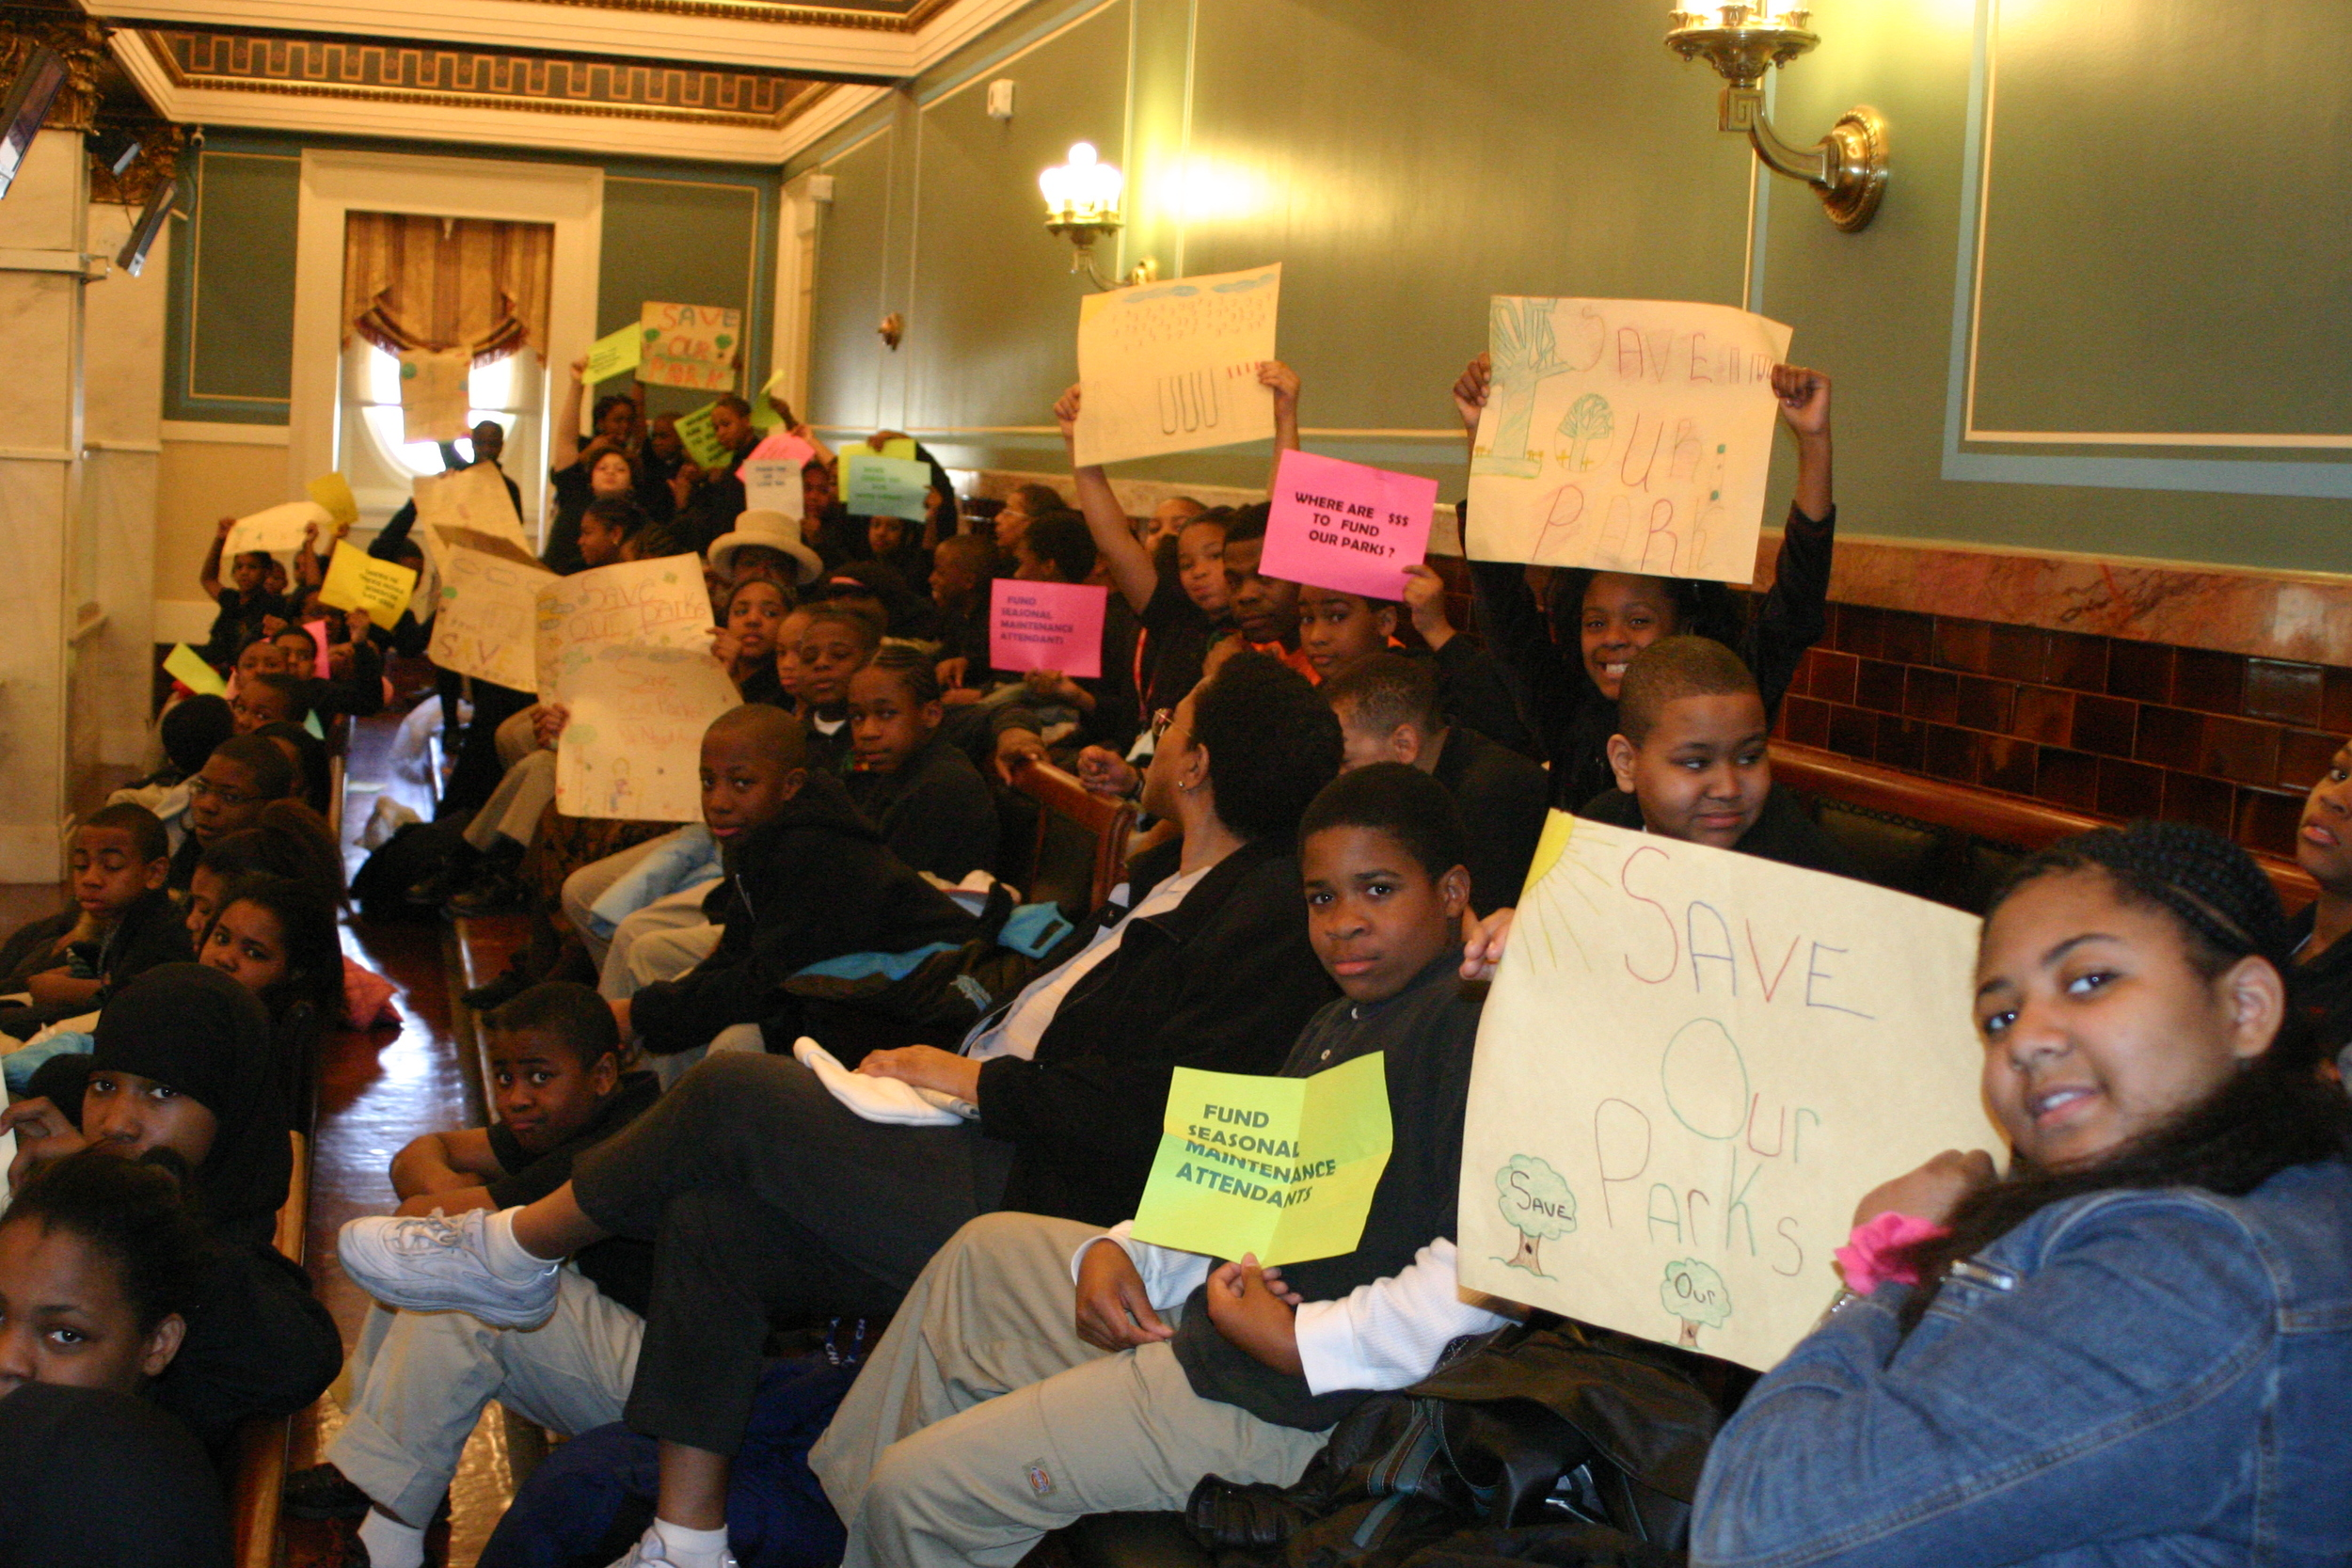 Discovery Charter students demand more money for parks